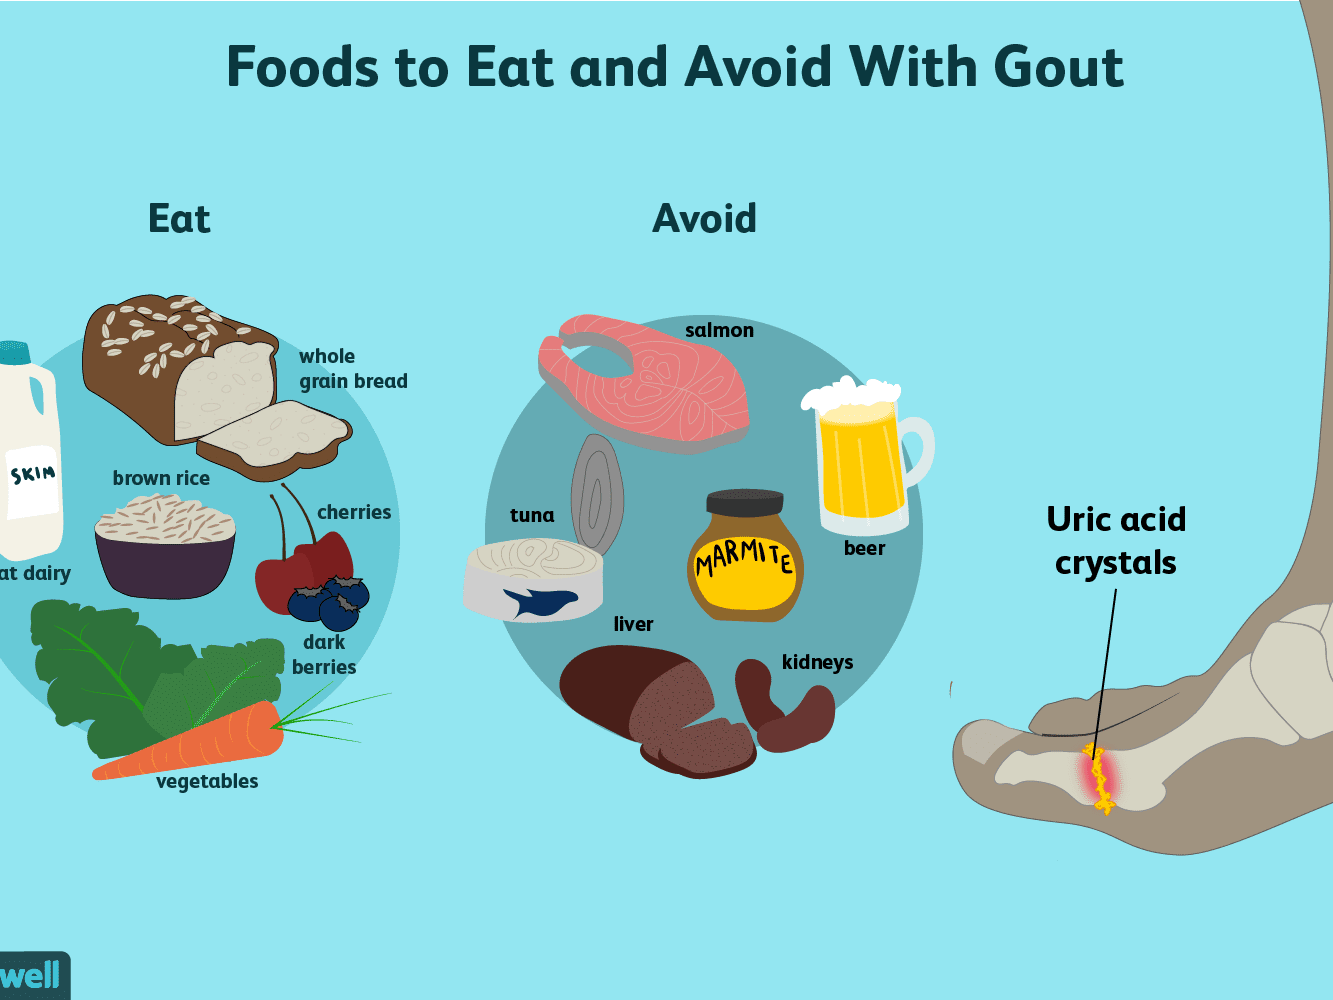 what foods can i eat oon gout diet